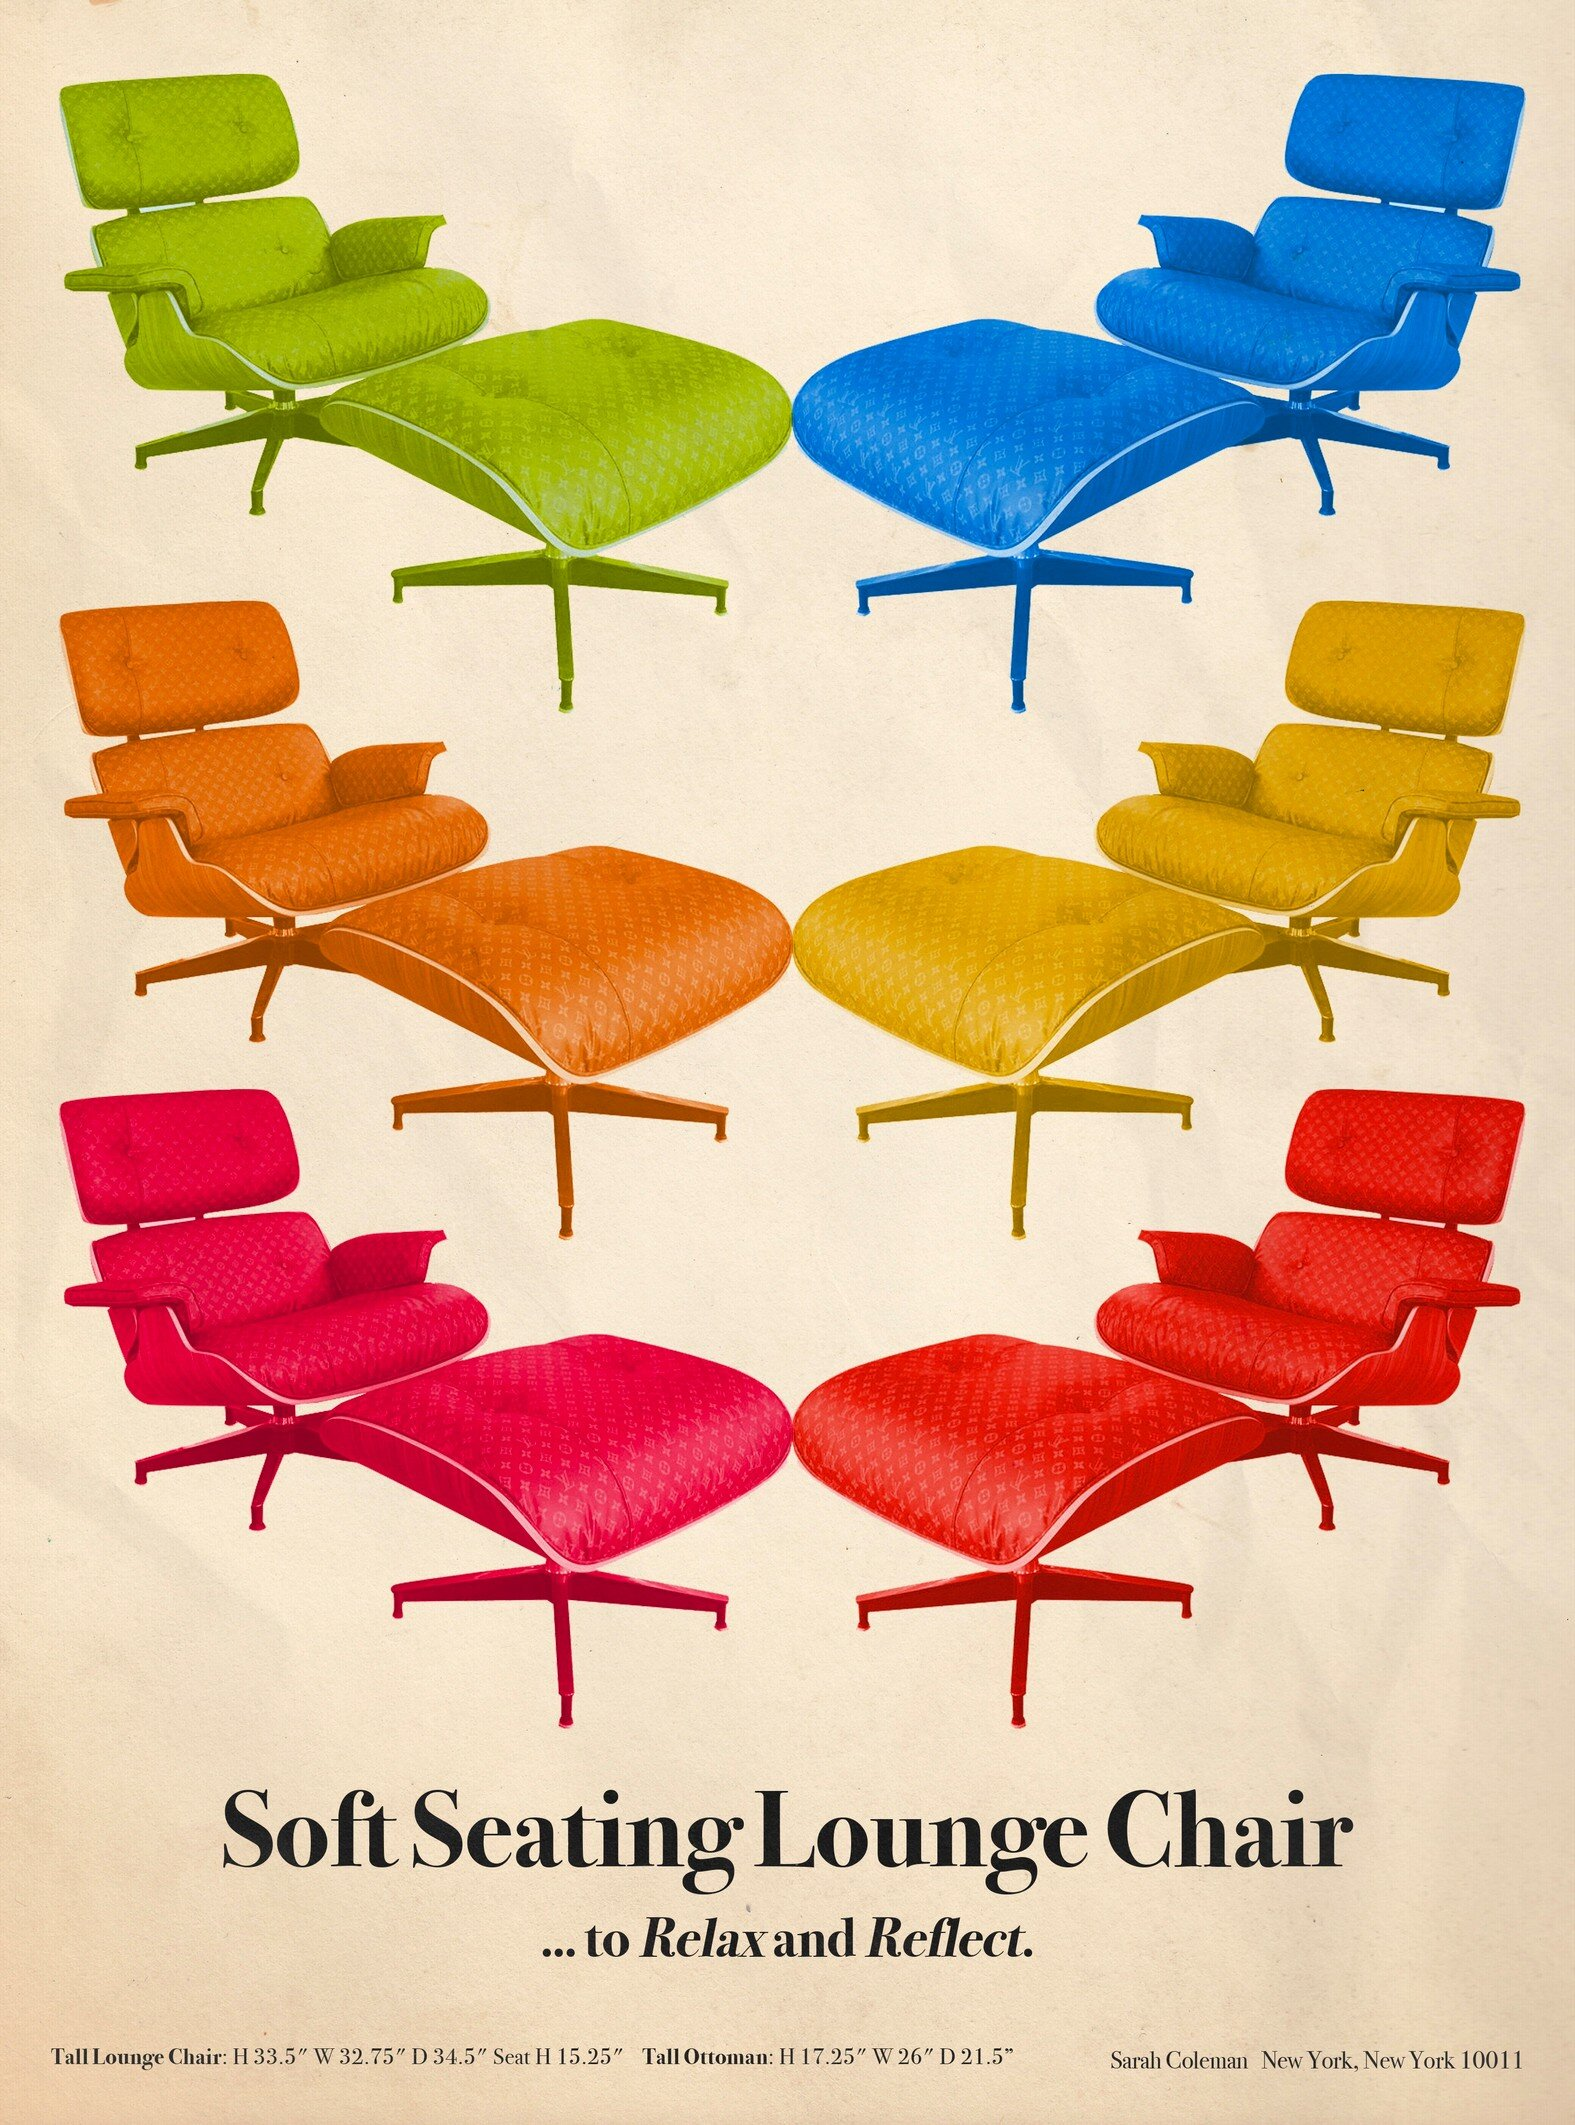 1565890389695-Print-Ready-no-by-line-SC_Soft-Seating-Lounge-Chair.jpeg